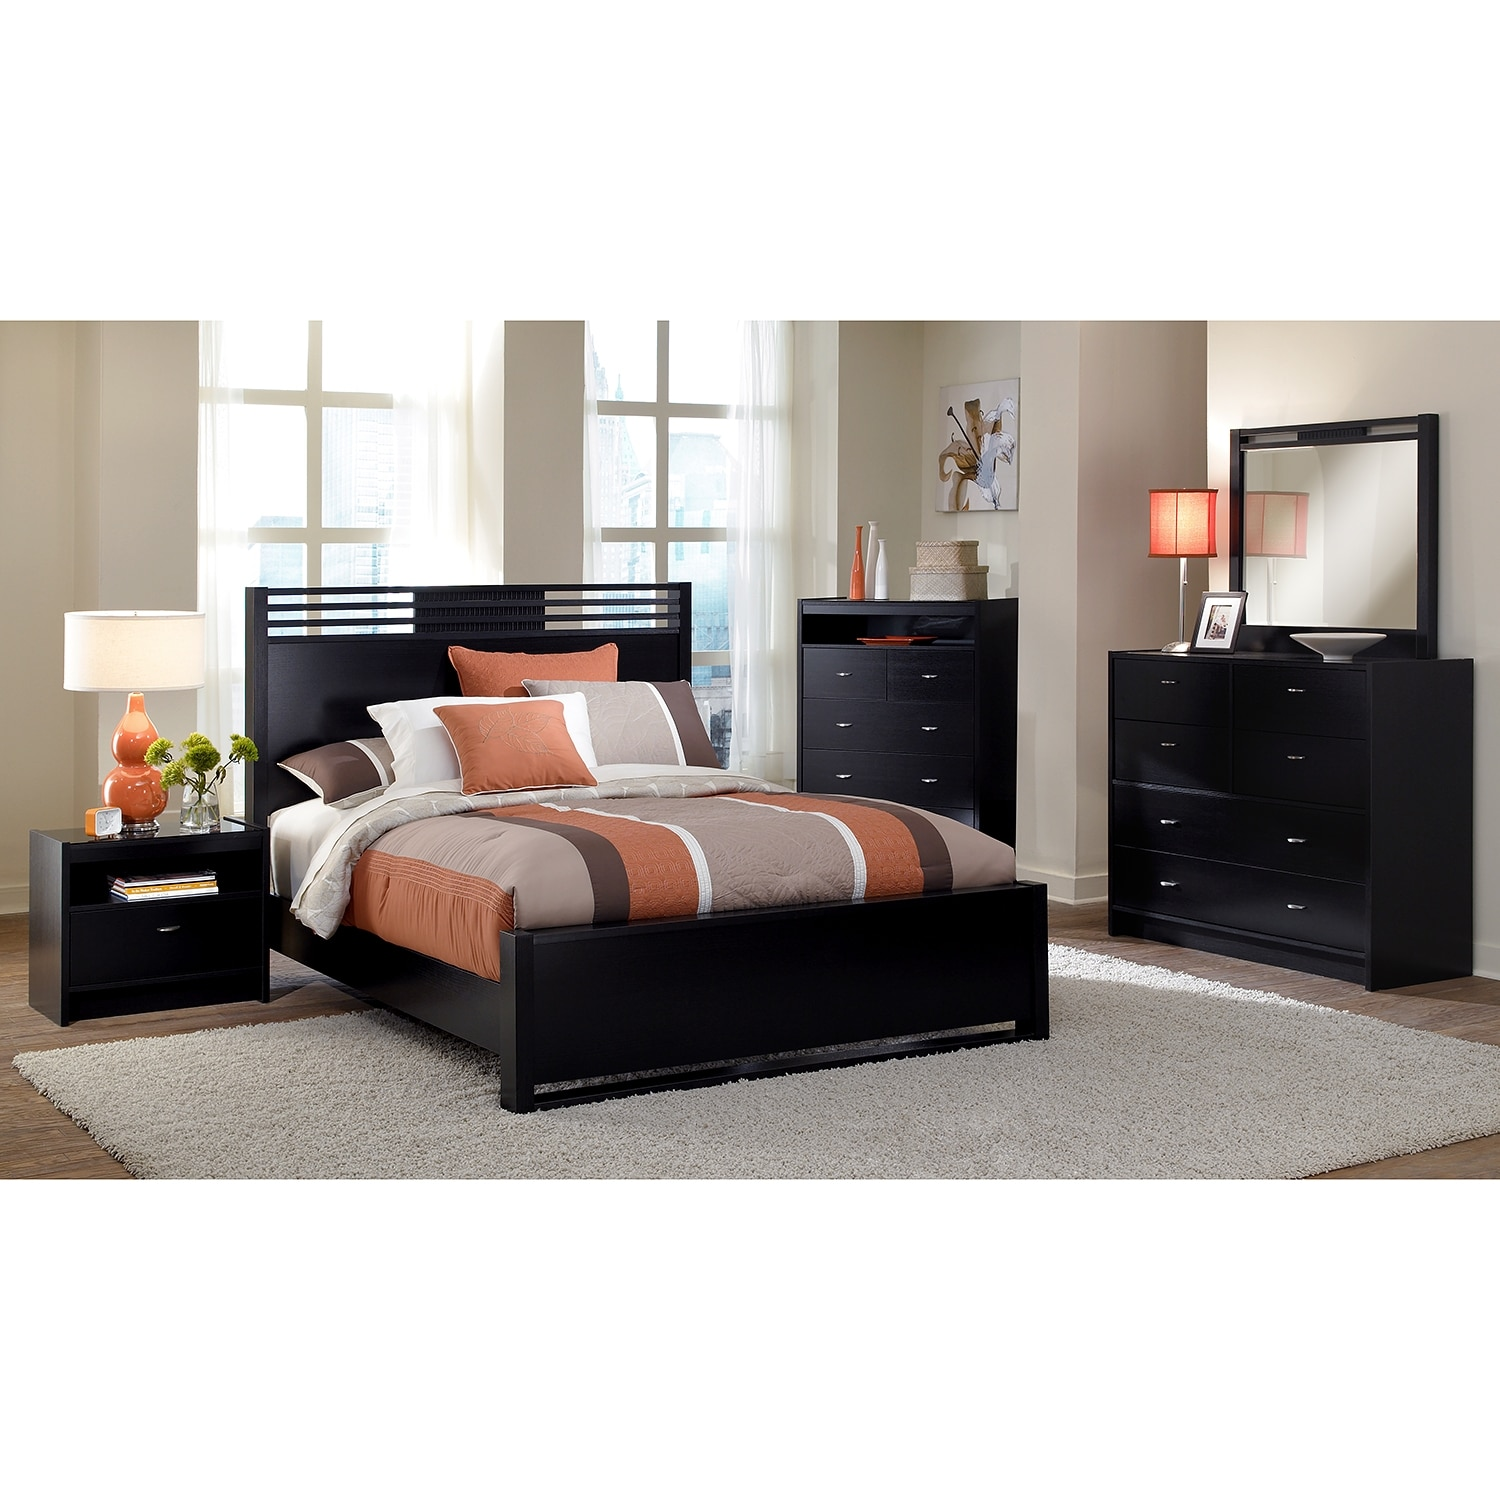 king bedroom set with chest espresso american signature furniture